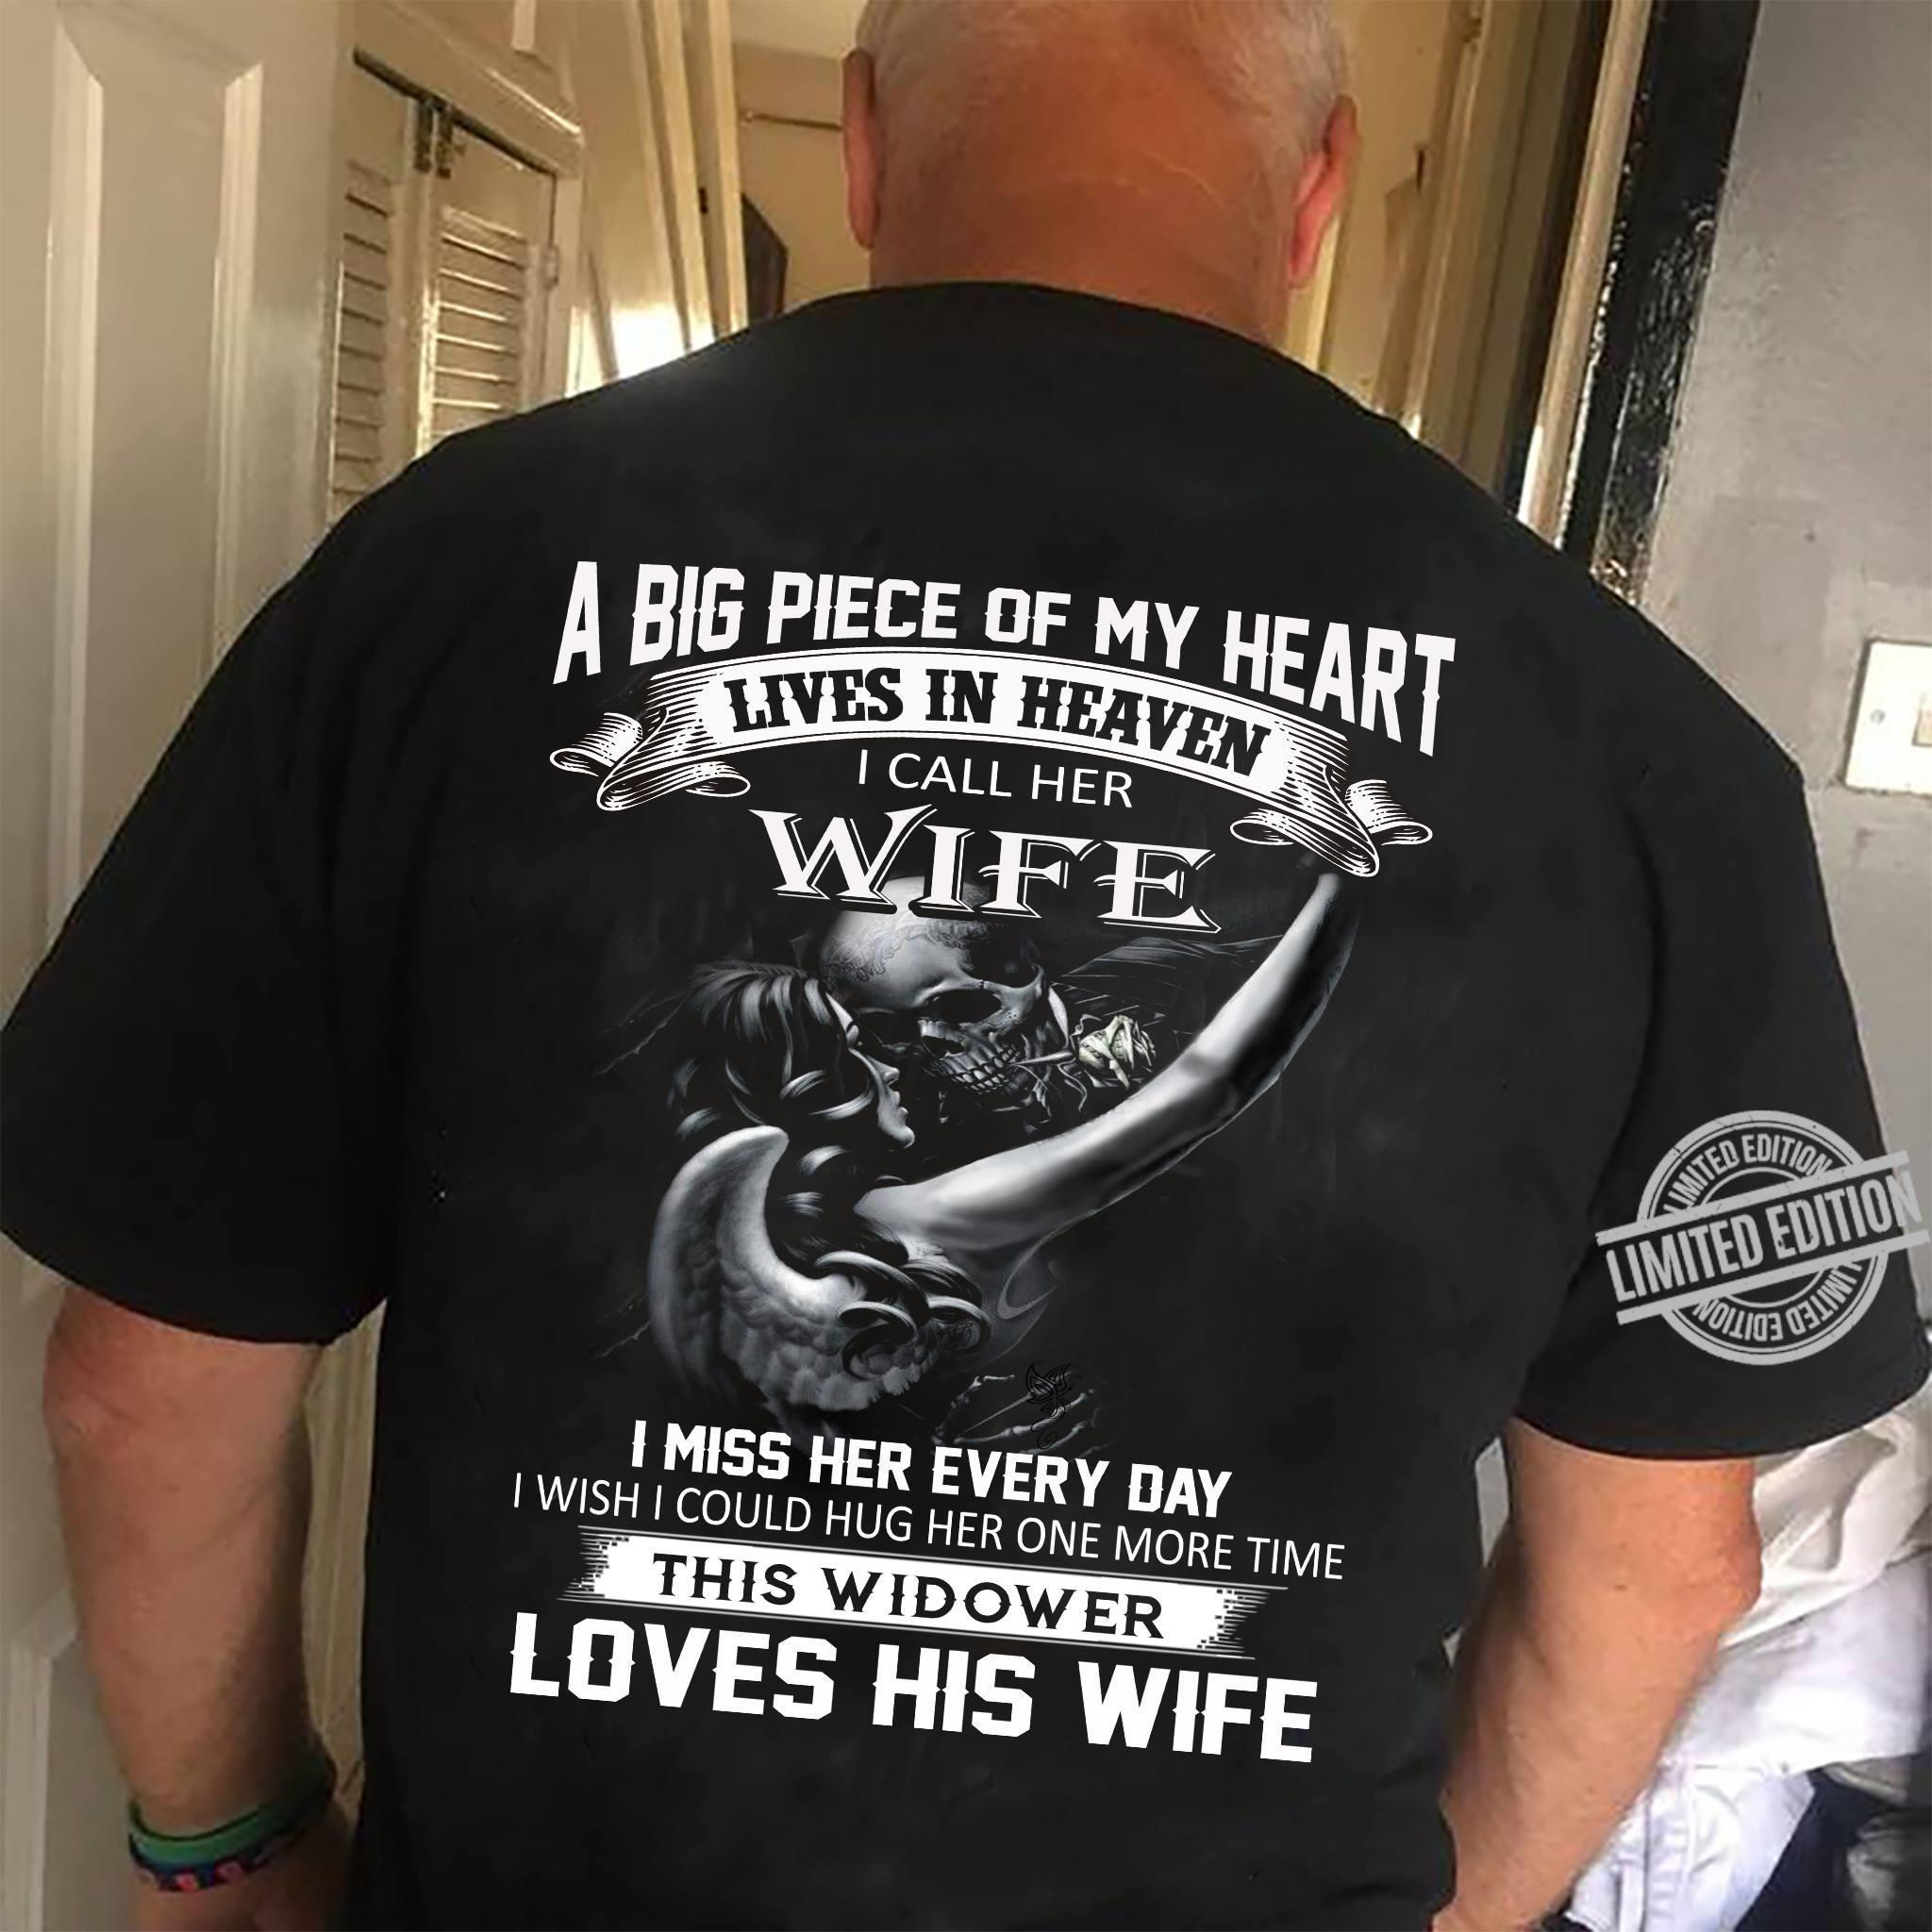 A Big Piece Of My Heart Lives In Heaven I Call Her Wife I Miss Her Every Day I Wish I Could Hug Her One More Time This Widower Loves His Wife Shirt